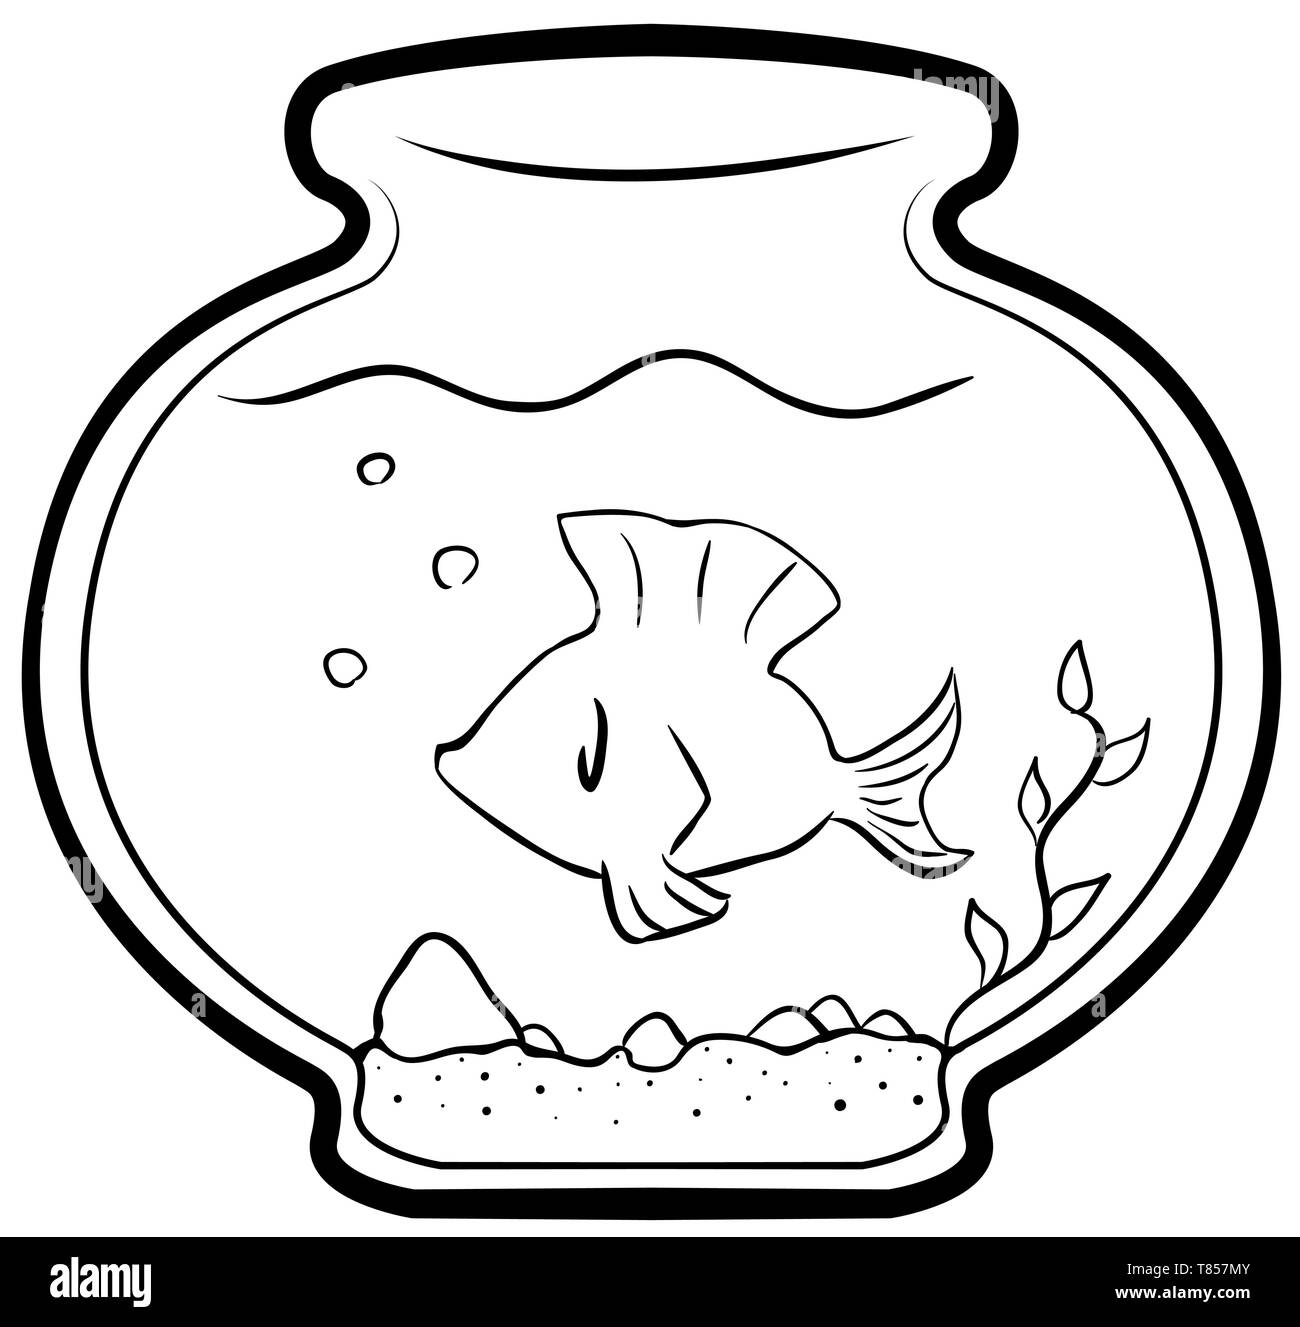 6+ Fish Black And White Clipart - Preview : Fish-black-white- | HDClipartAll